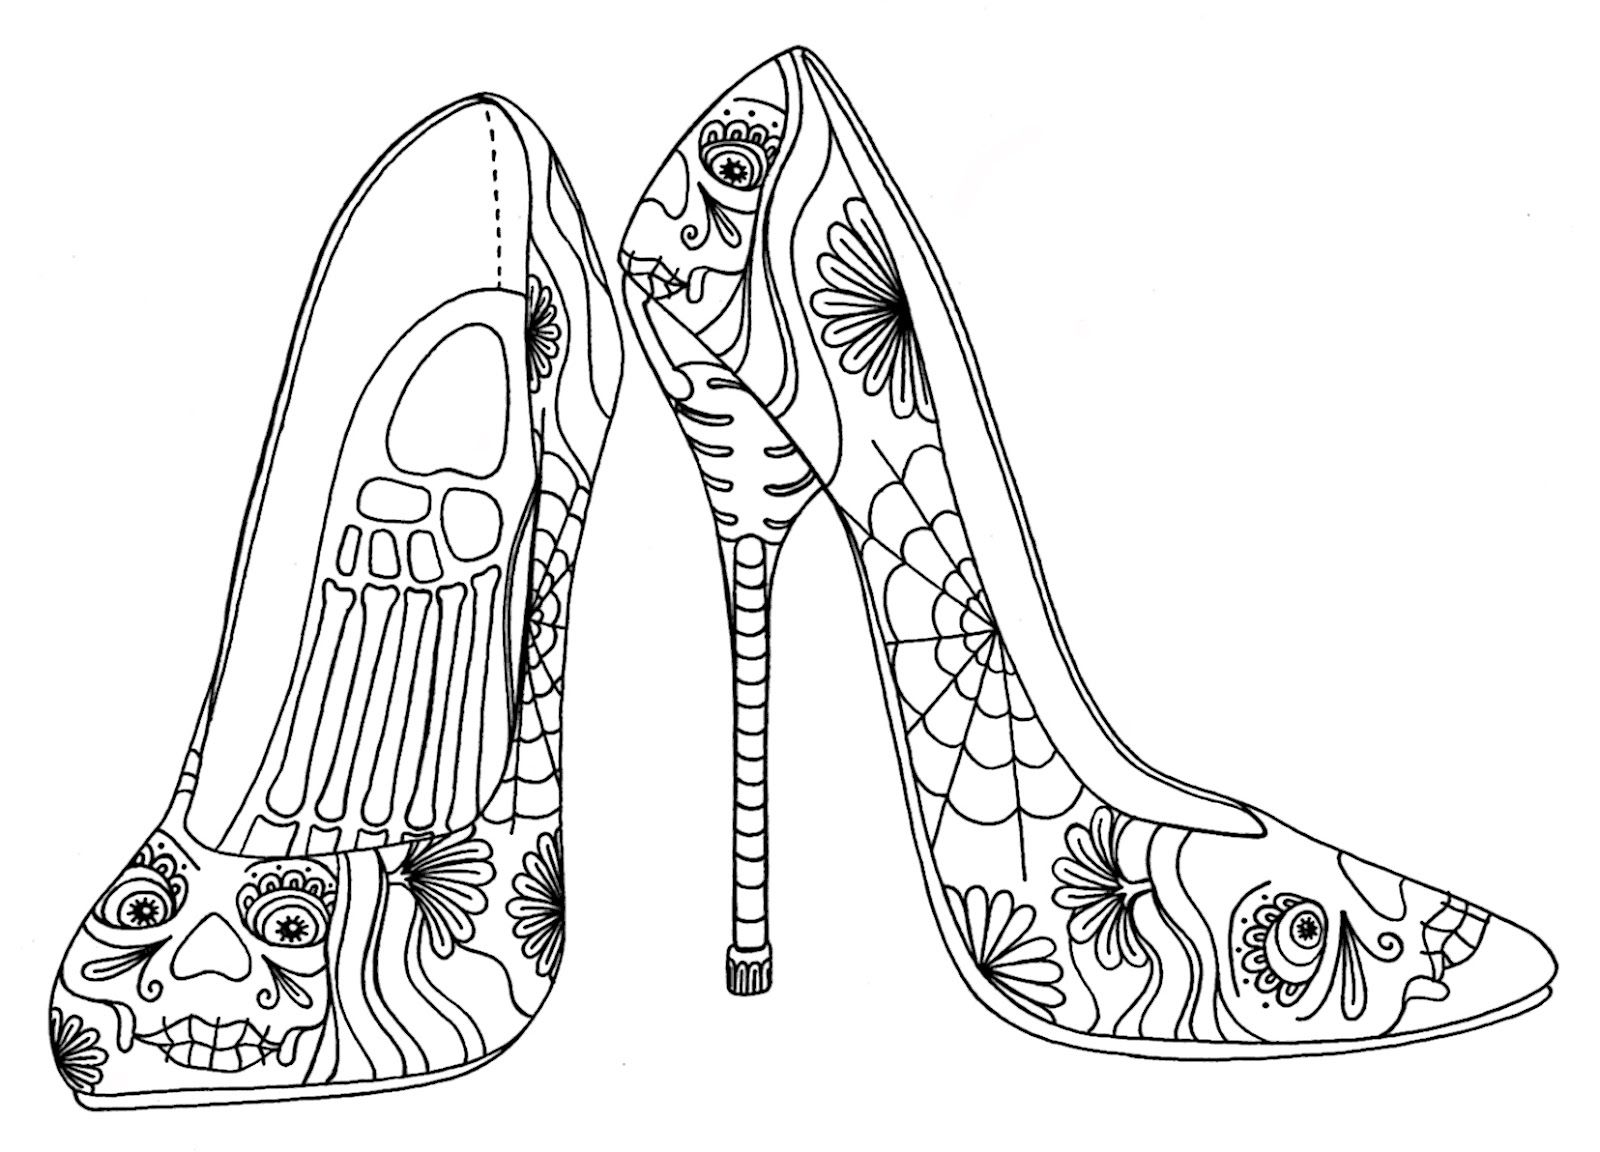 Coloring pages for jordans - Yucca Flats N M Wenchkin S Coloring Pages Day Of The Heels Plus Bonus Page